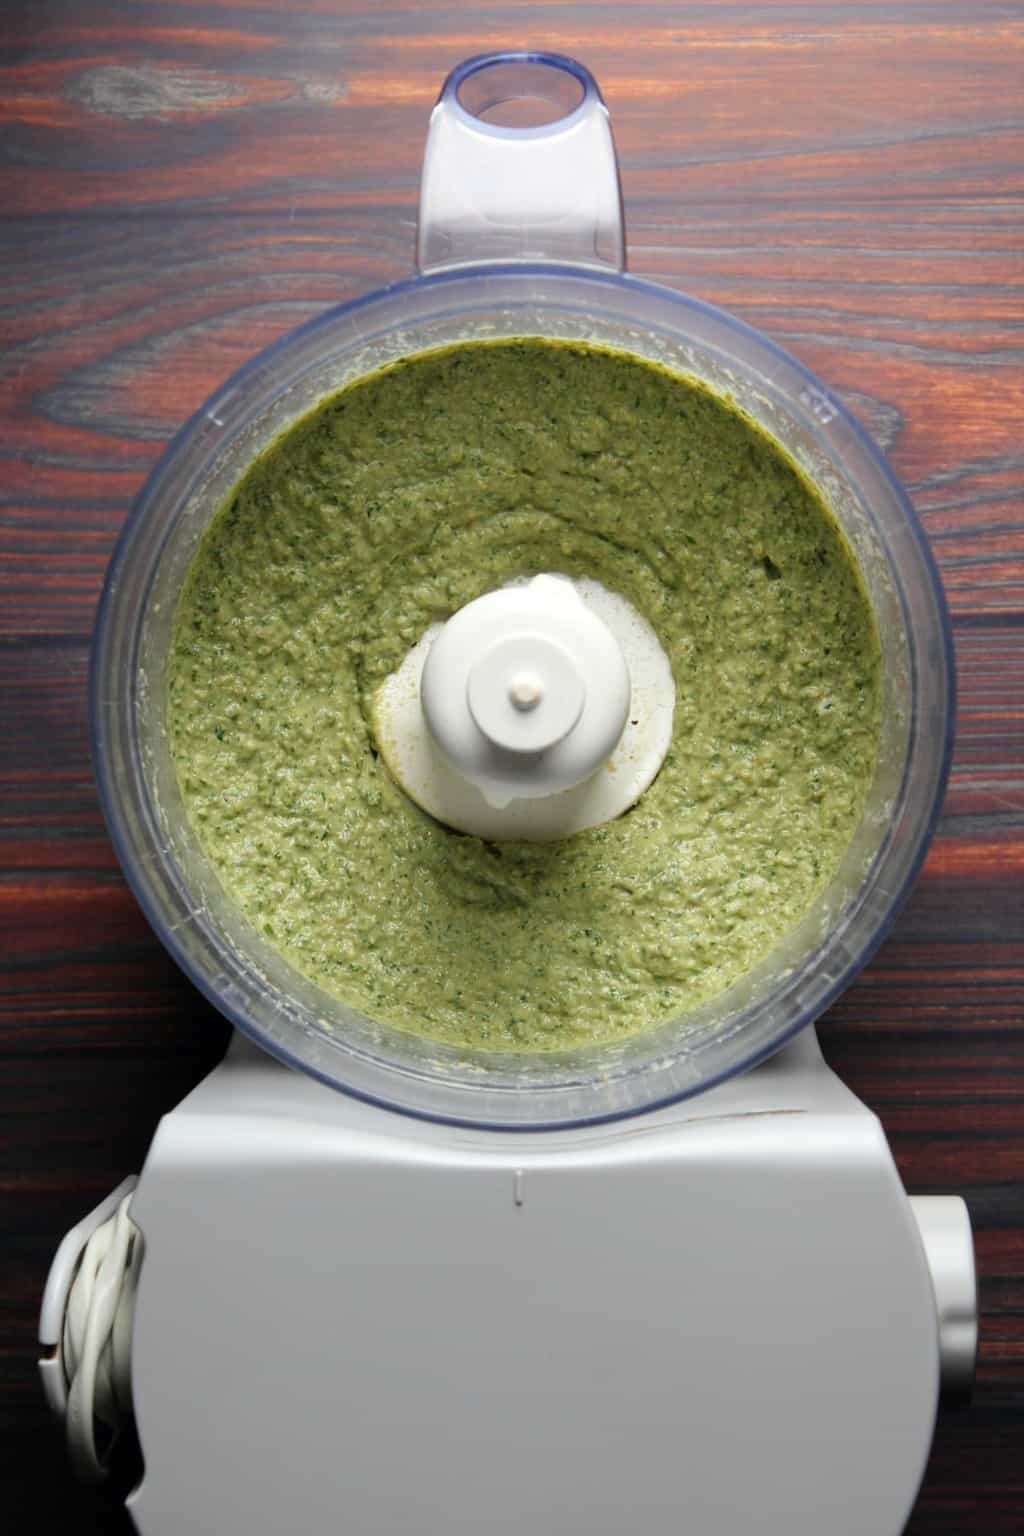 Freshly made vegan pesto in a food processor.